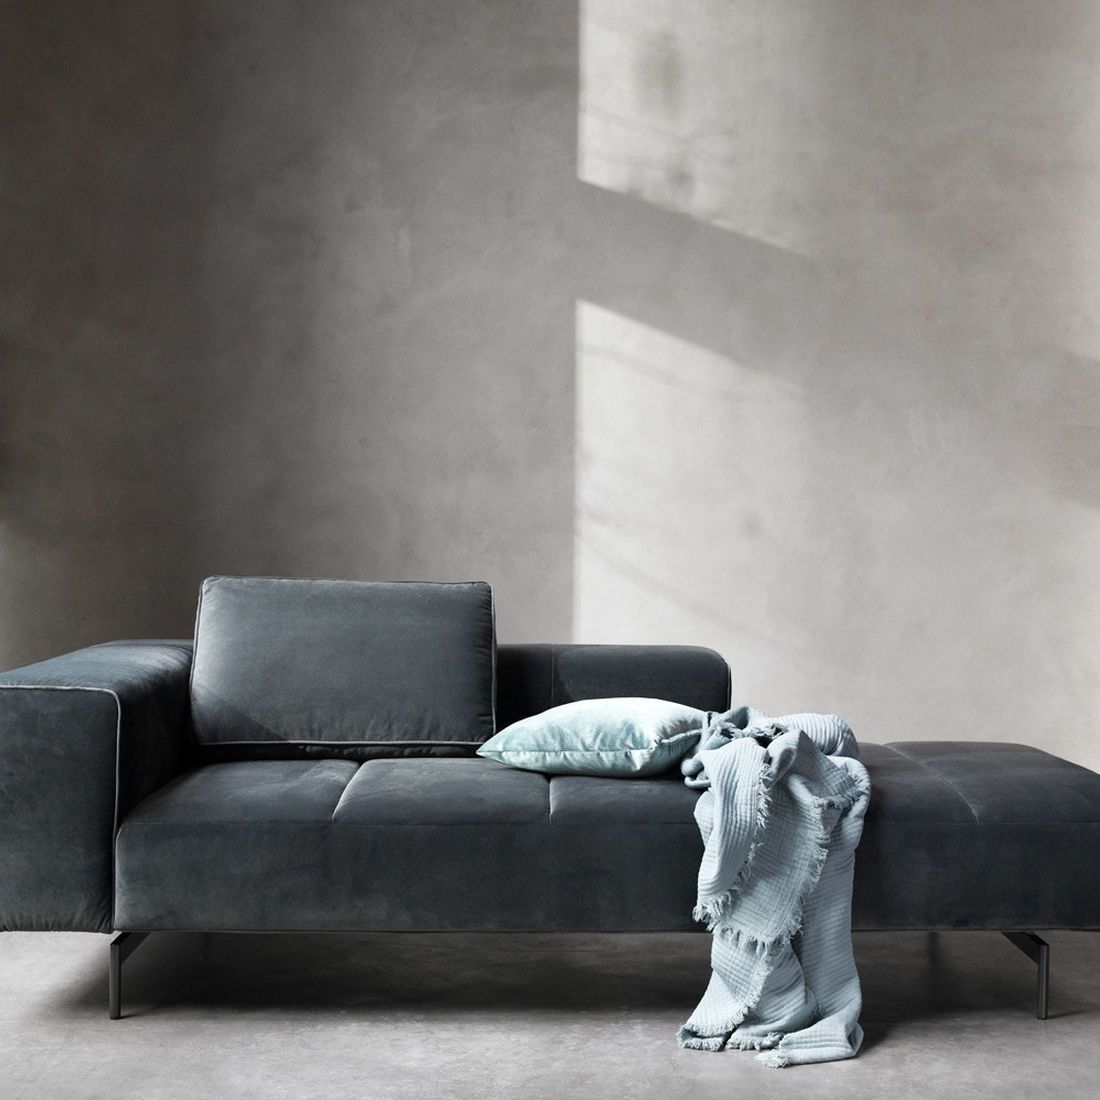 Chaise lounge sofas amsterdam lounging module for sofa medium armrest right boconcept